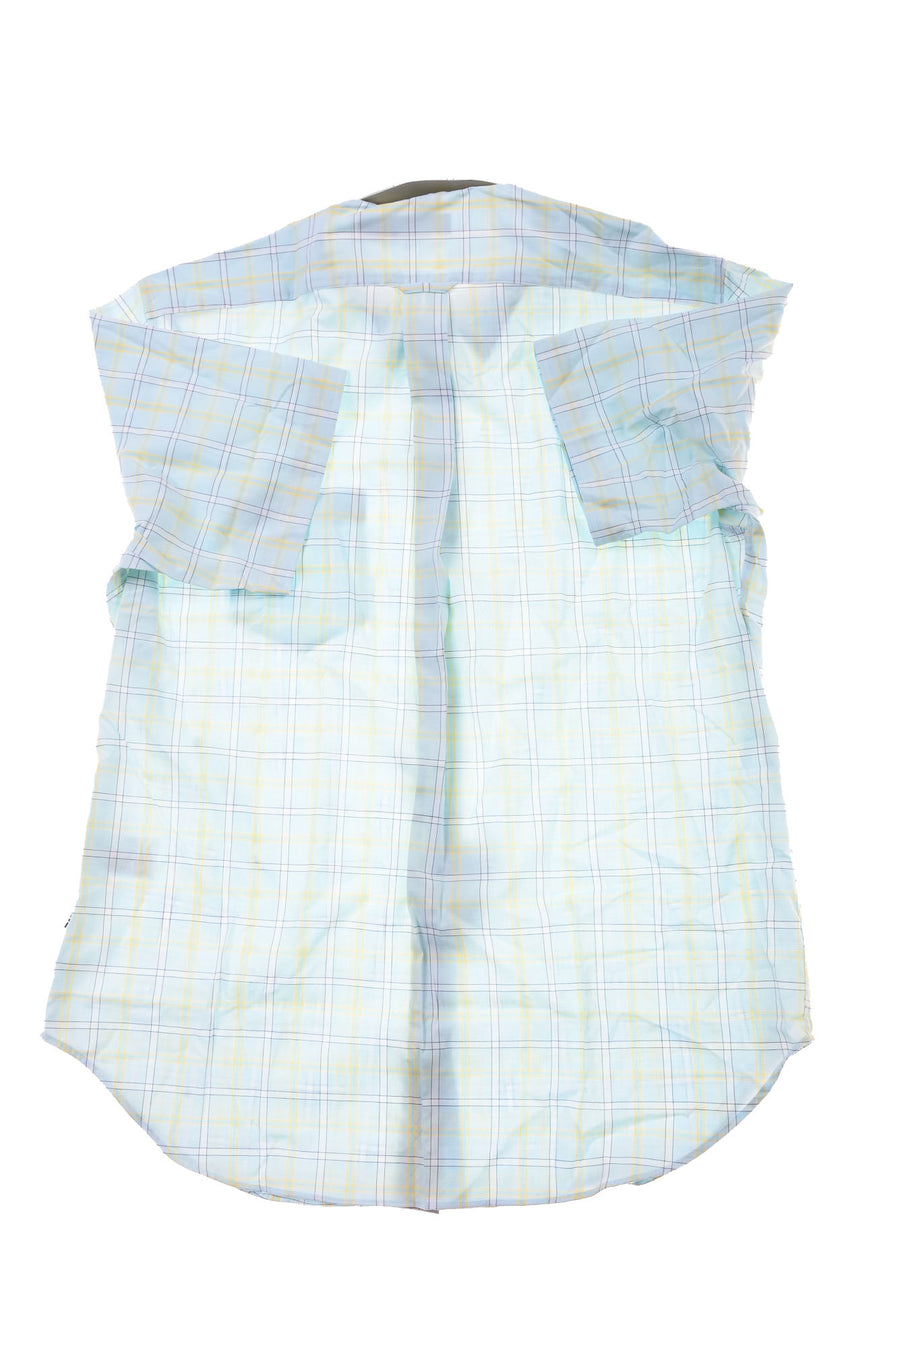 Men's Shirt By Nautica